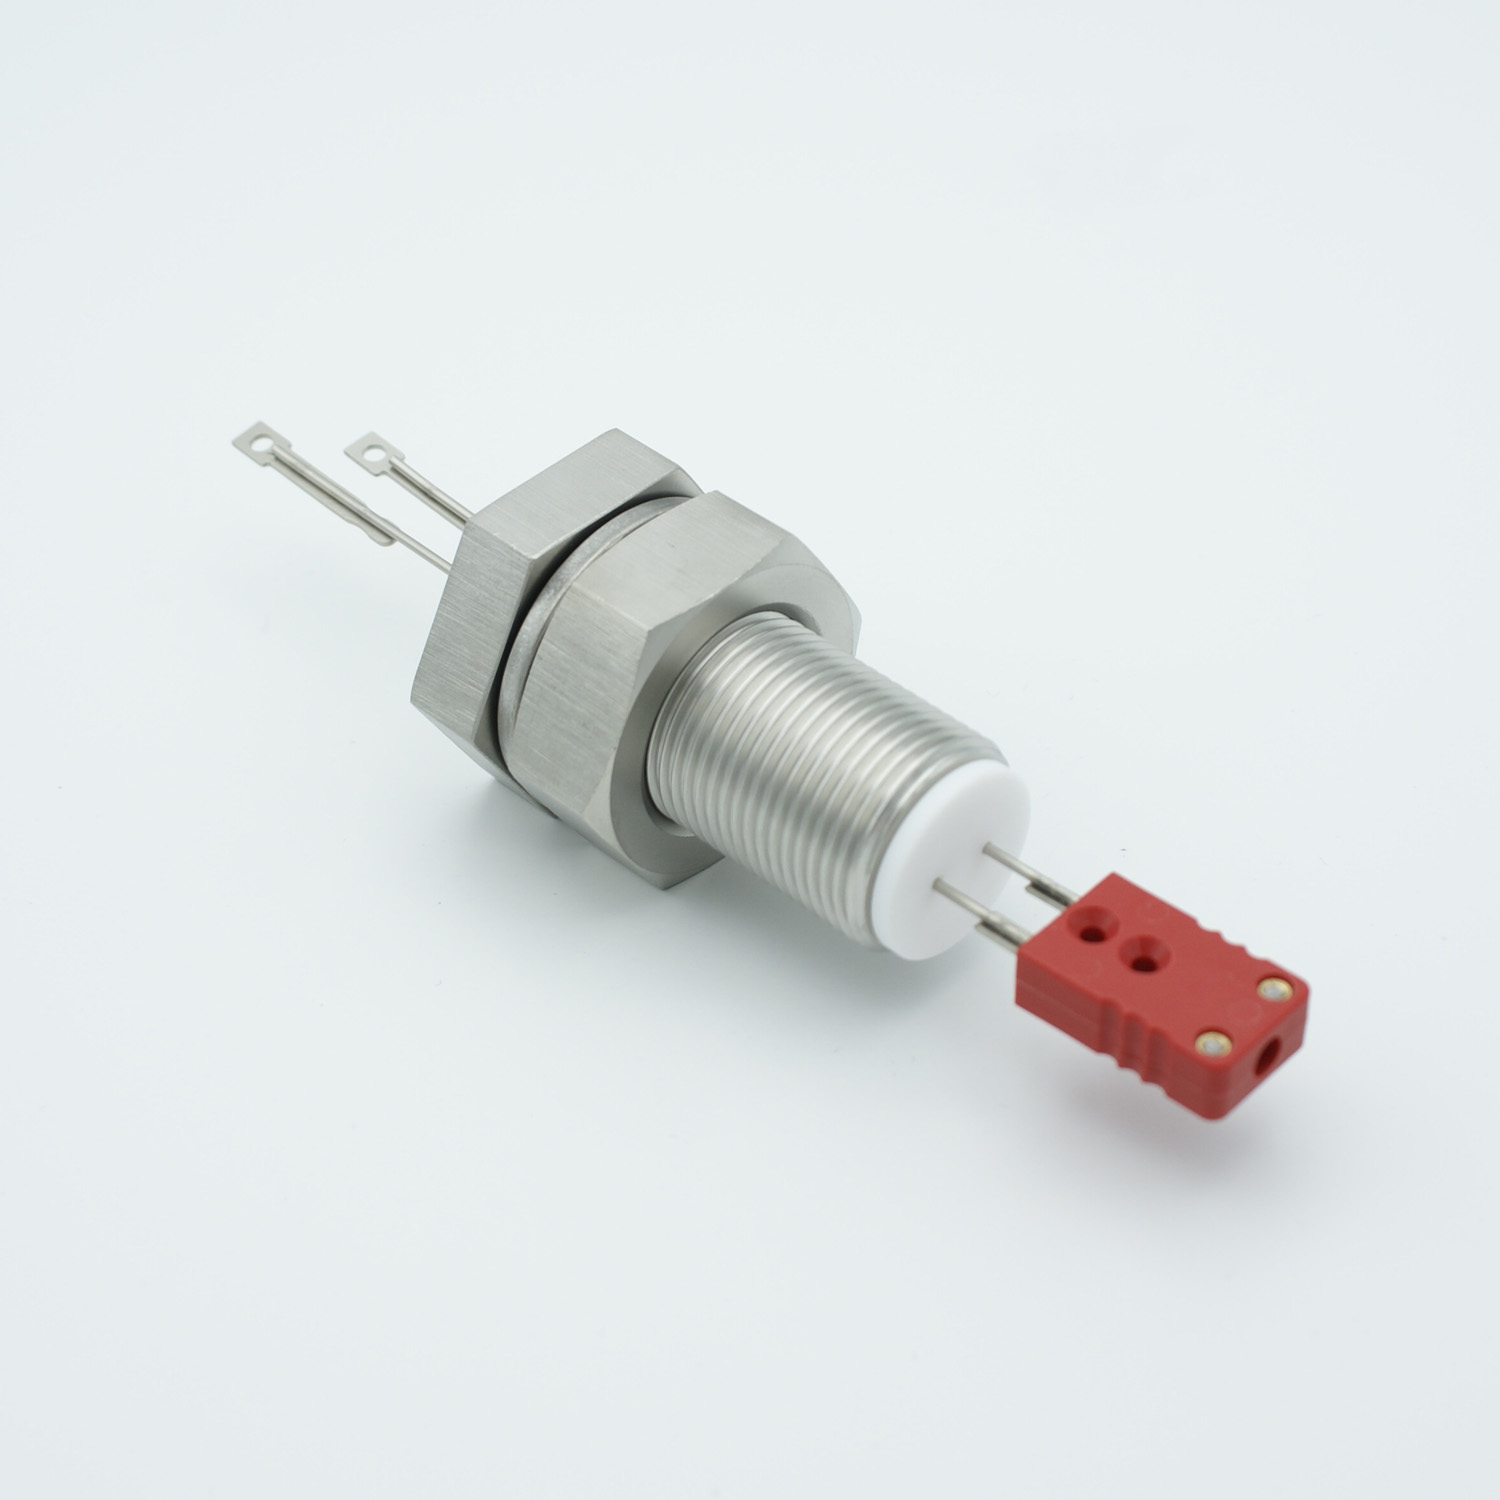 1 pair Thermocouple type-C feedthrough with both side connectors included, base plate fitting